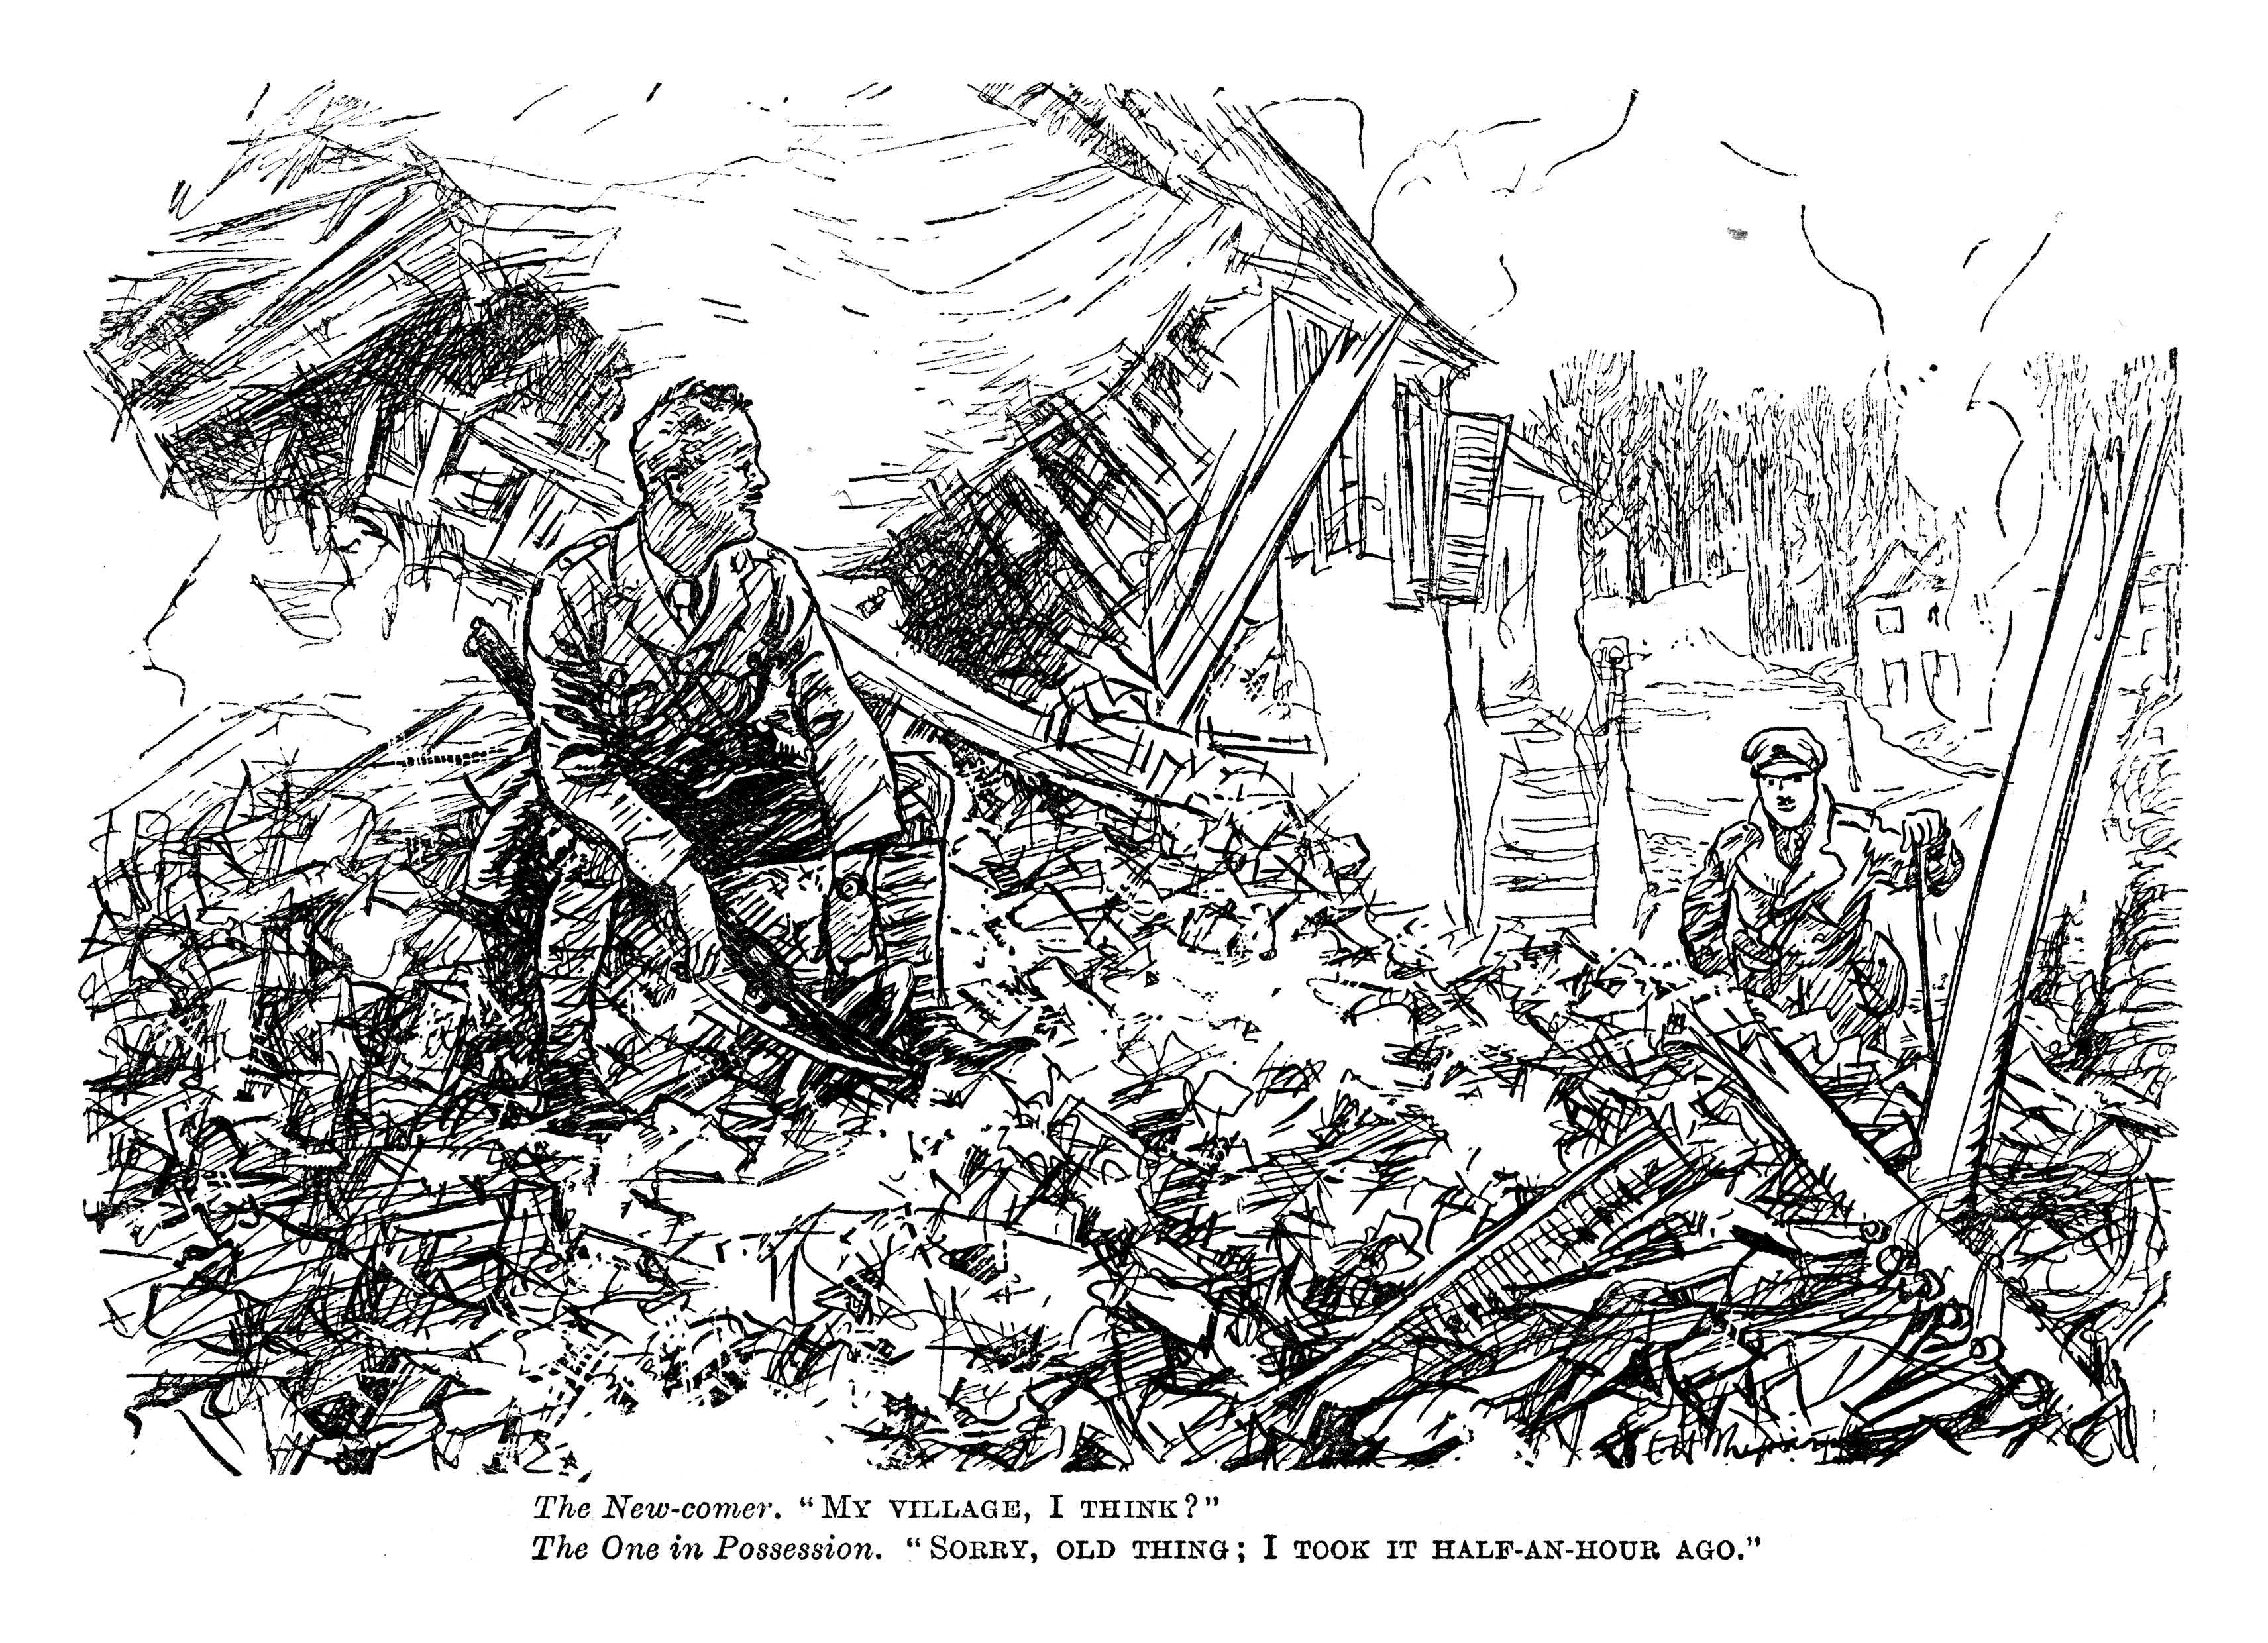 E.H. Shepard: An Illustrator's War